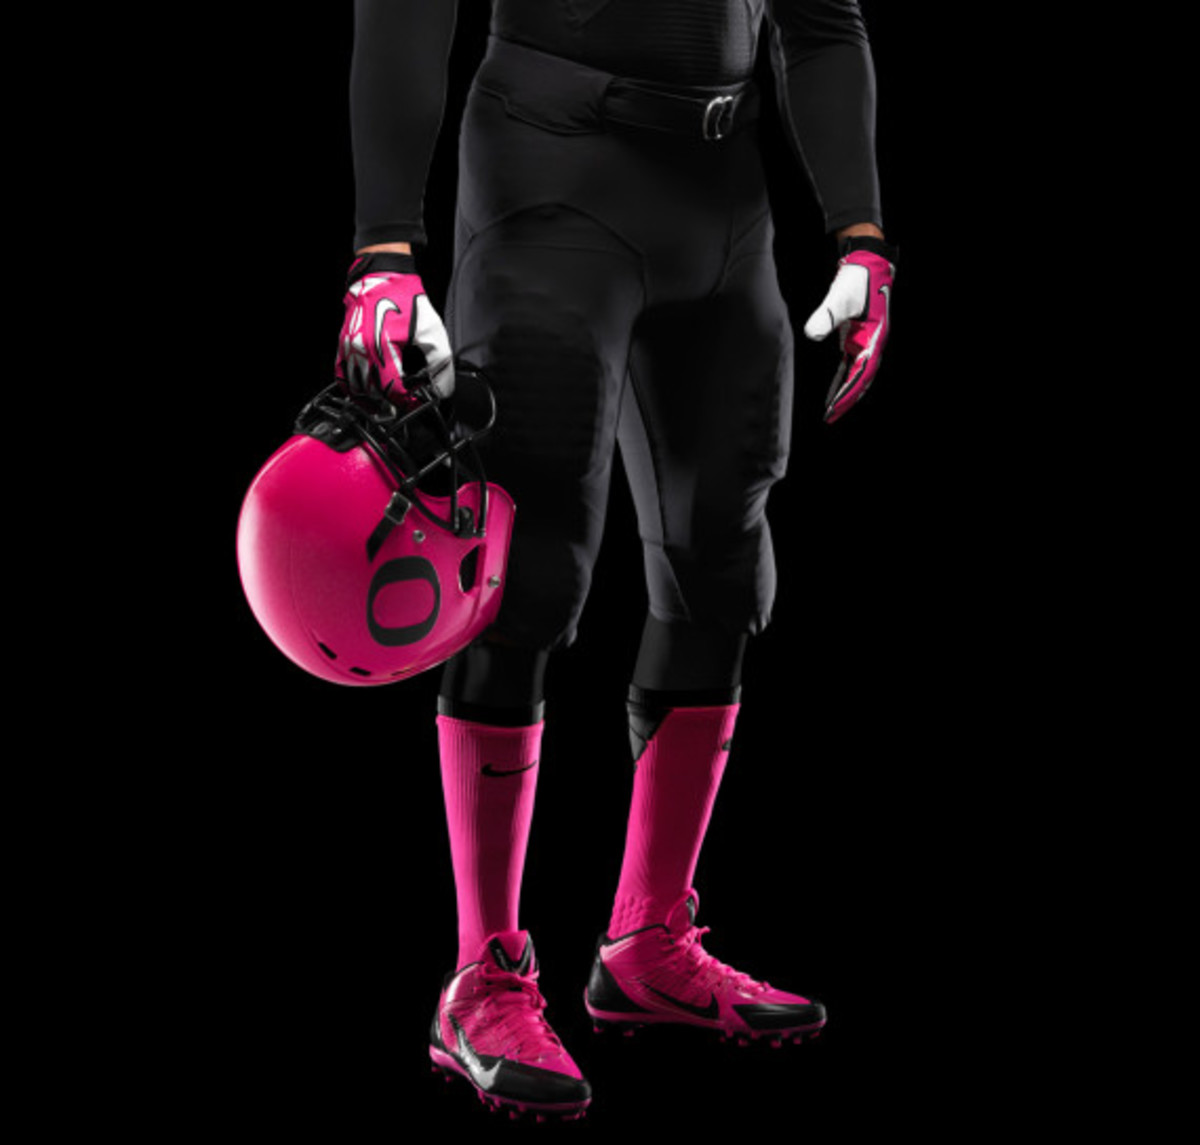 nike-oregon-ducks-football-pays-tribute-to-breast-